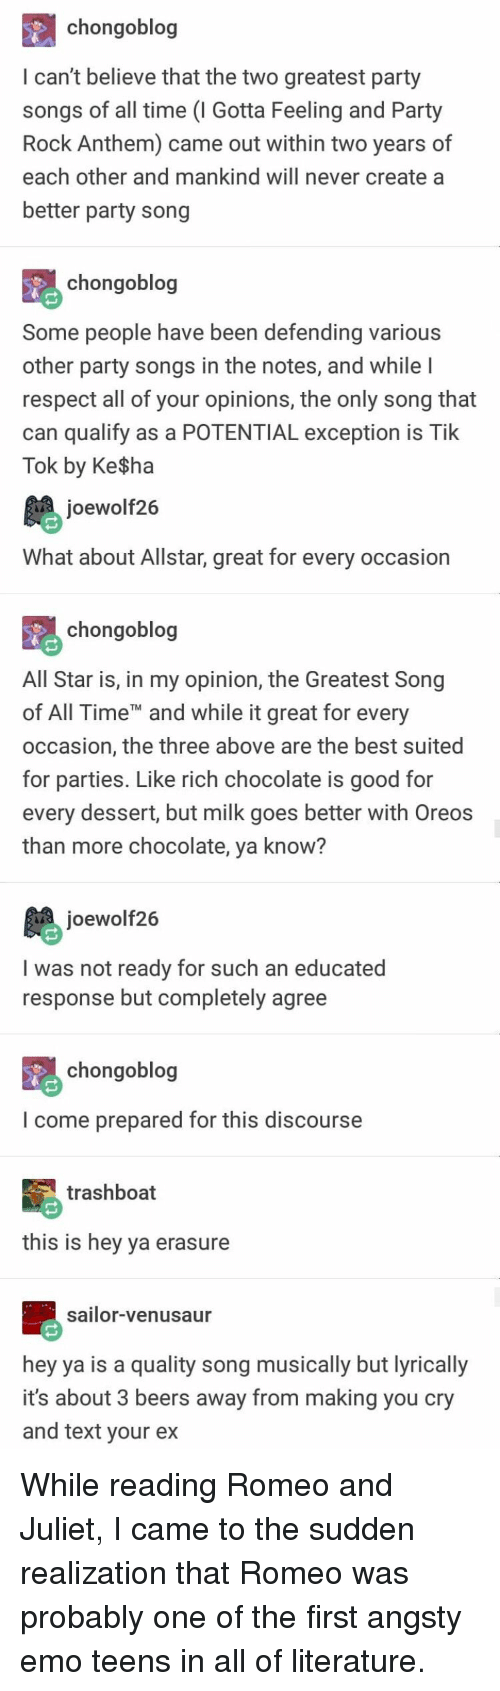 All Star, Emo, and Hey Ya: chongoblog  I can't believe that the two greatest party  songs of all time (I Gotta Feeling and Party  Rock Anthem) came out within two years of  each other and mankind will never create a  better party song  chongoblog  Some people have been defending various  other party songs in the notes, and while  respect all of your opinions, the only song that  can qualify as a POTENTIAL exception is Tik  Tok by Ke$ha  joewolf26  What about Allstar, great for every occasion  chongoblog  All Star is, in my opinion, the Greatest Song  of All TimeT and while it great for every  occasion, the three above are the best suited  for parties. Like rich chocolate is good for  every dessert, but milk goes better with Oreos  than more chocolate, ya know?  joewolf26  I was not ready for such an educated  response but completely agree  chongoblog  I come prepared for this discourse  trashboat  this is hey ya erasure  sailor-venusaur  hey ya is a quality song musically but lyrically  it's about 3 beers away from making you cry  and text vour ex While reading Romeo and Juliet, I came to the sudden realization that Romeo was probably one of the first angsty emo teens in all of literature.